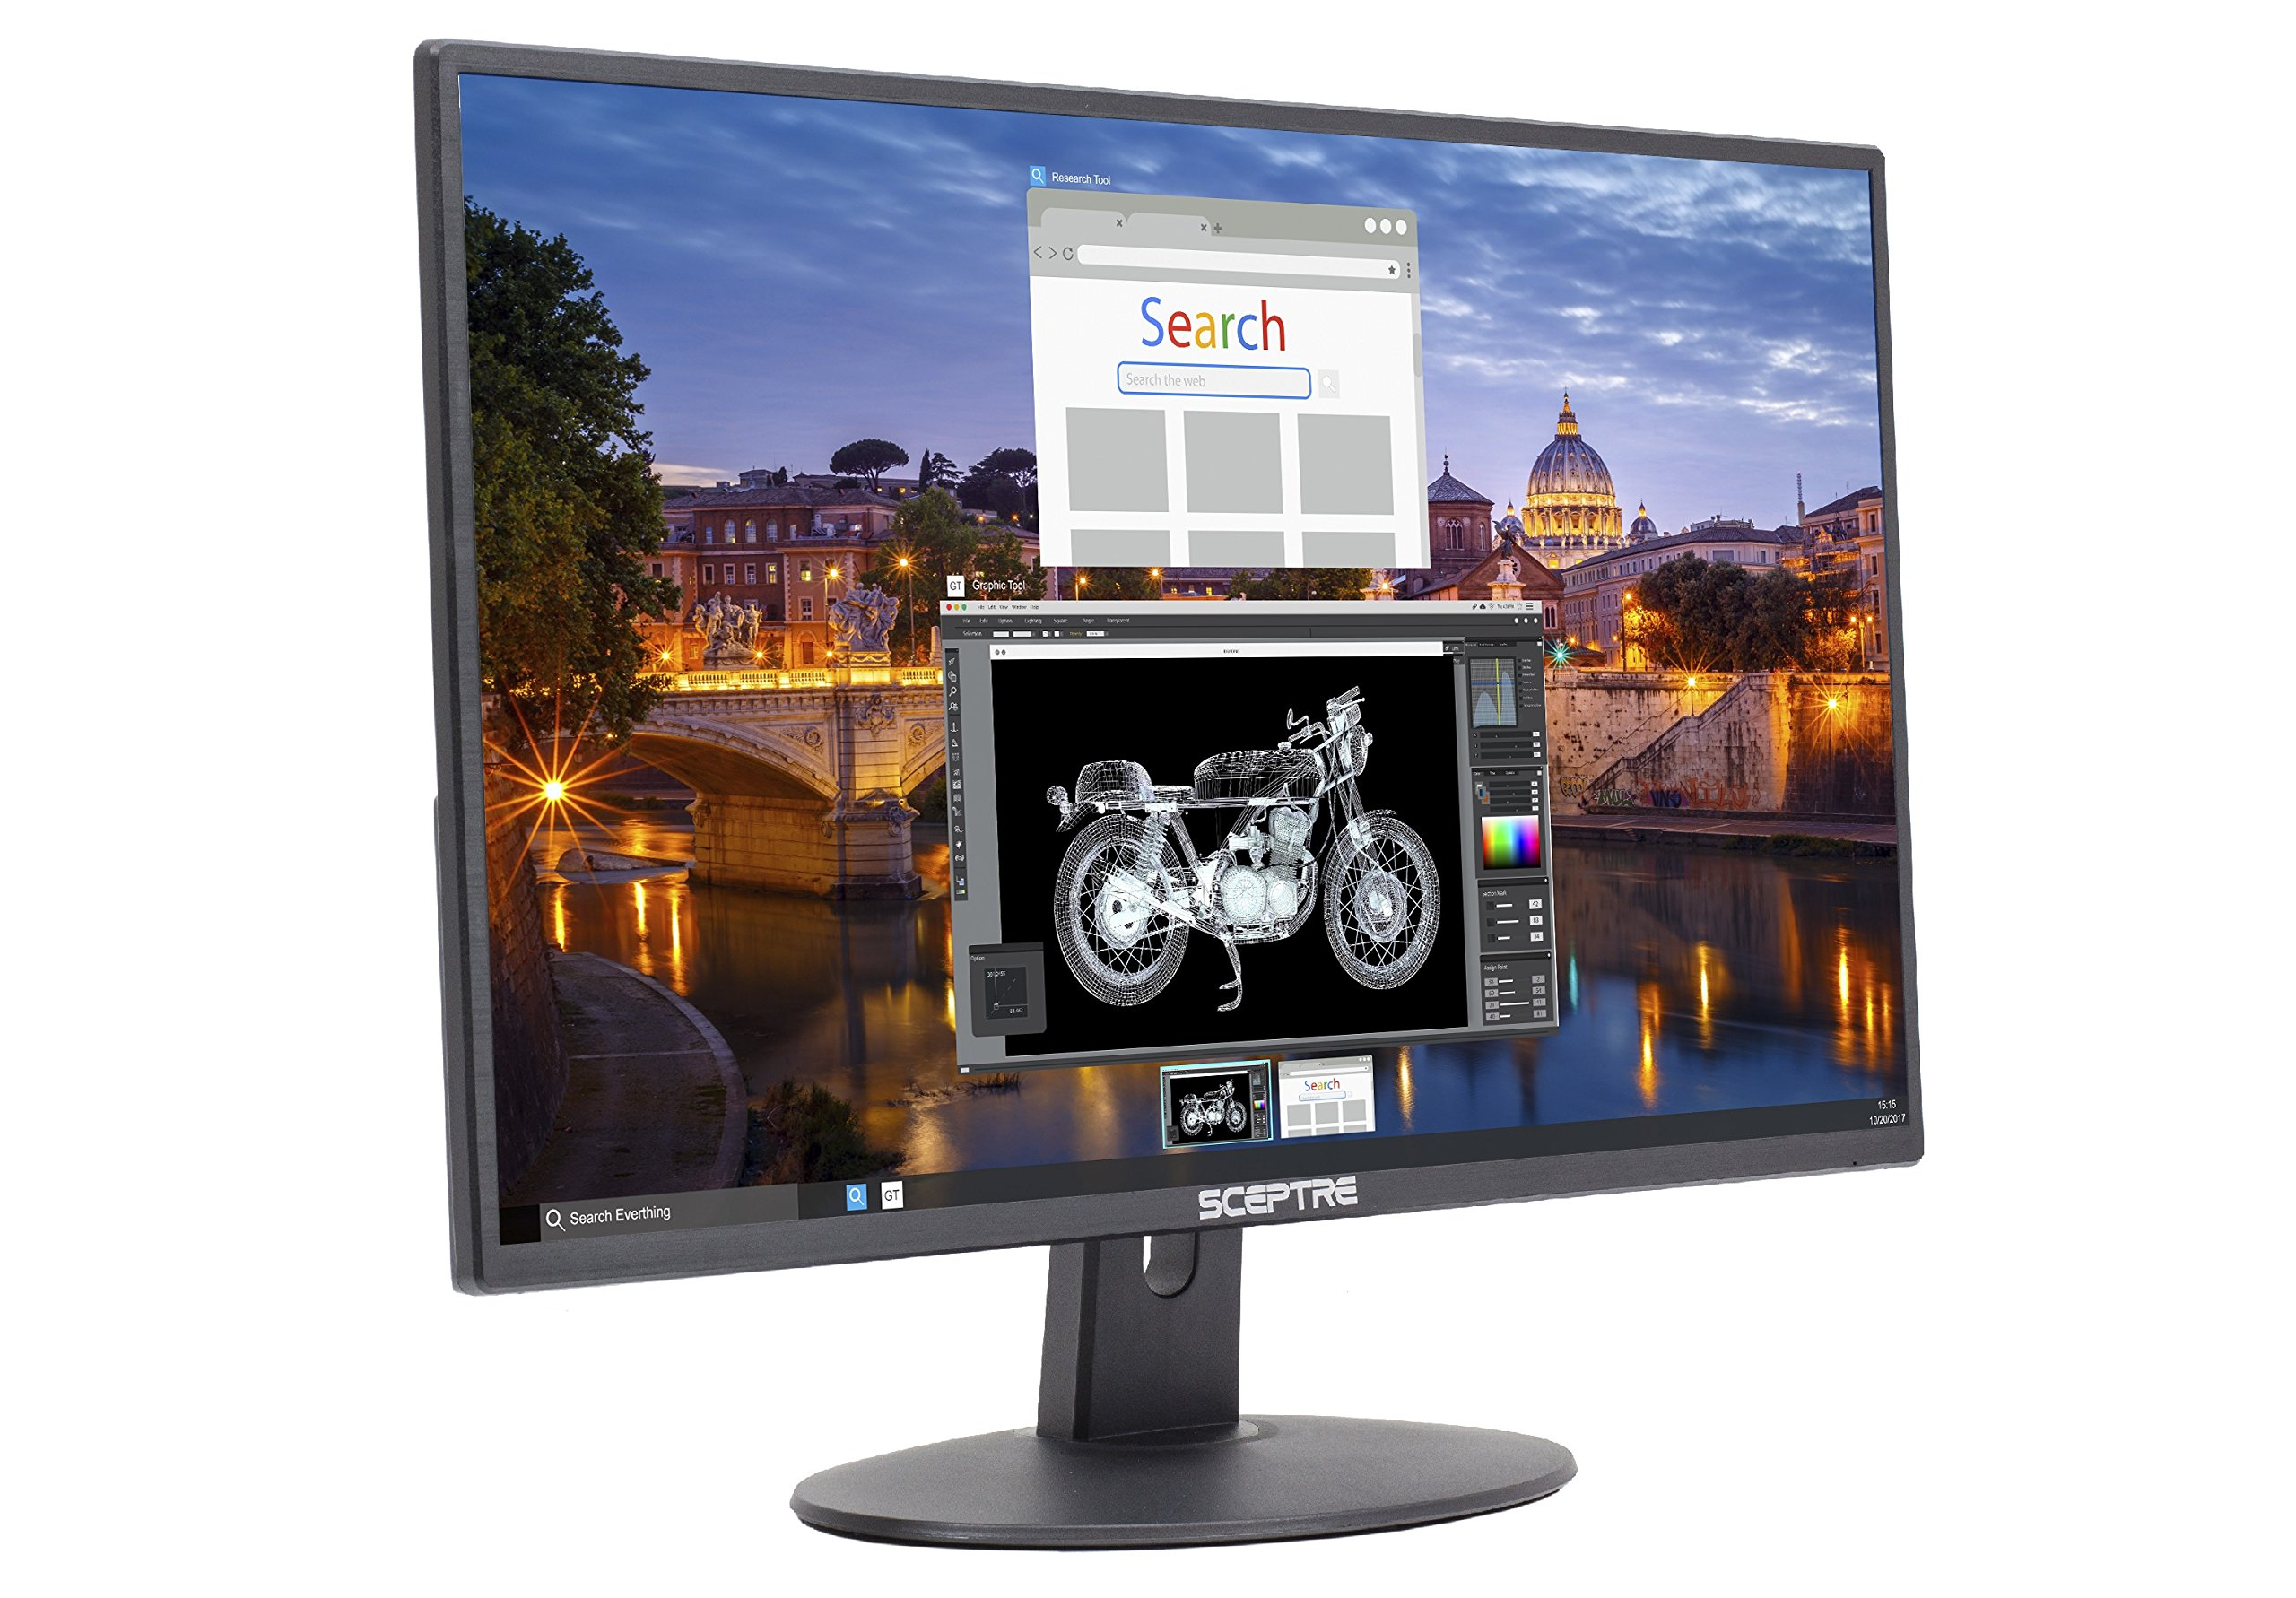 Sceptre E225W-19203R 22'' Ultra Thin 75Hz 1080p LED Monitor 2X HDMI VGA Build-in Speakers, Metallic Black 2018 by Sceptre